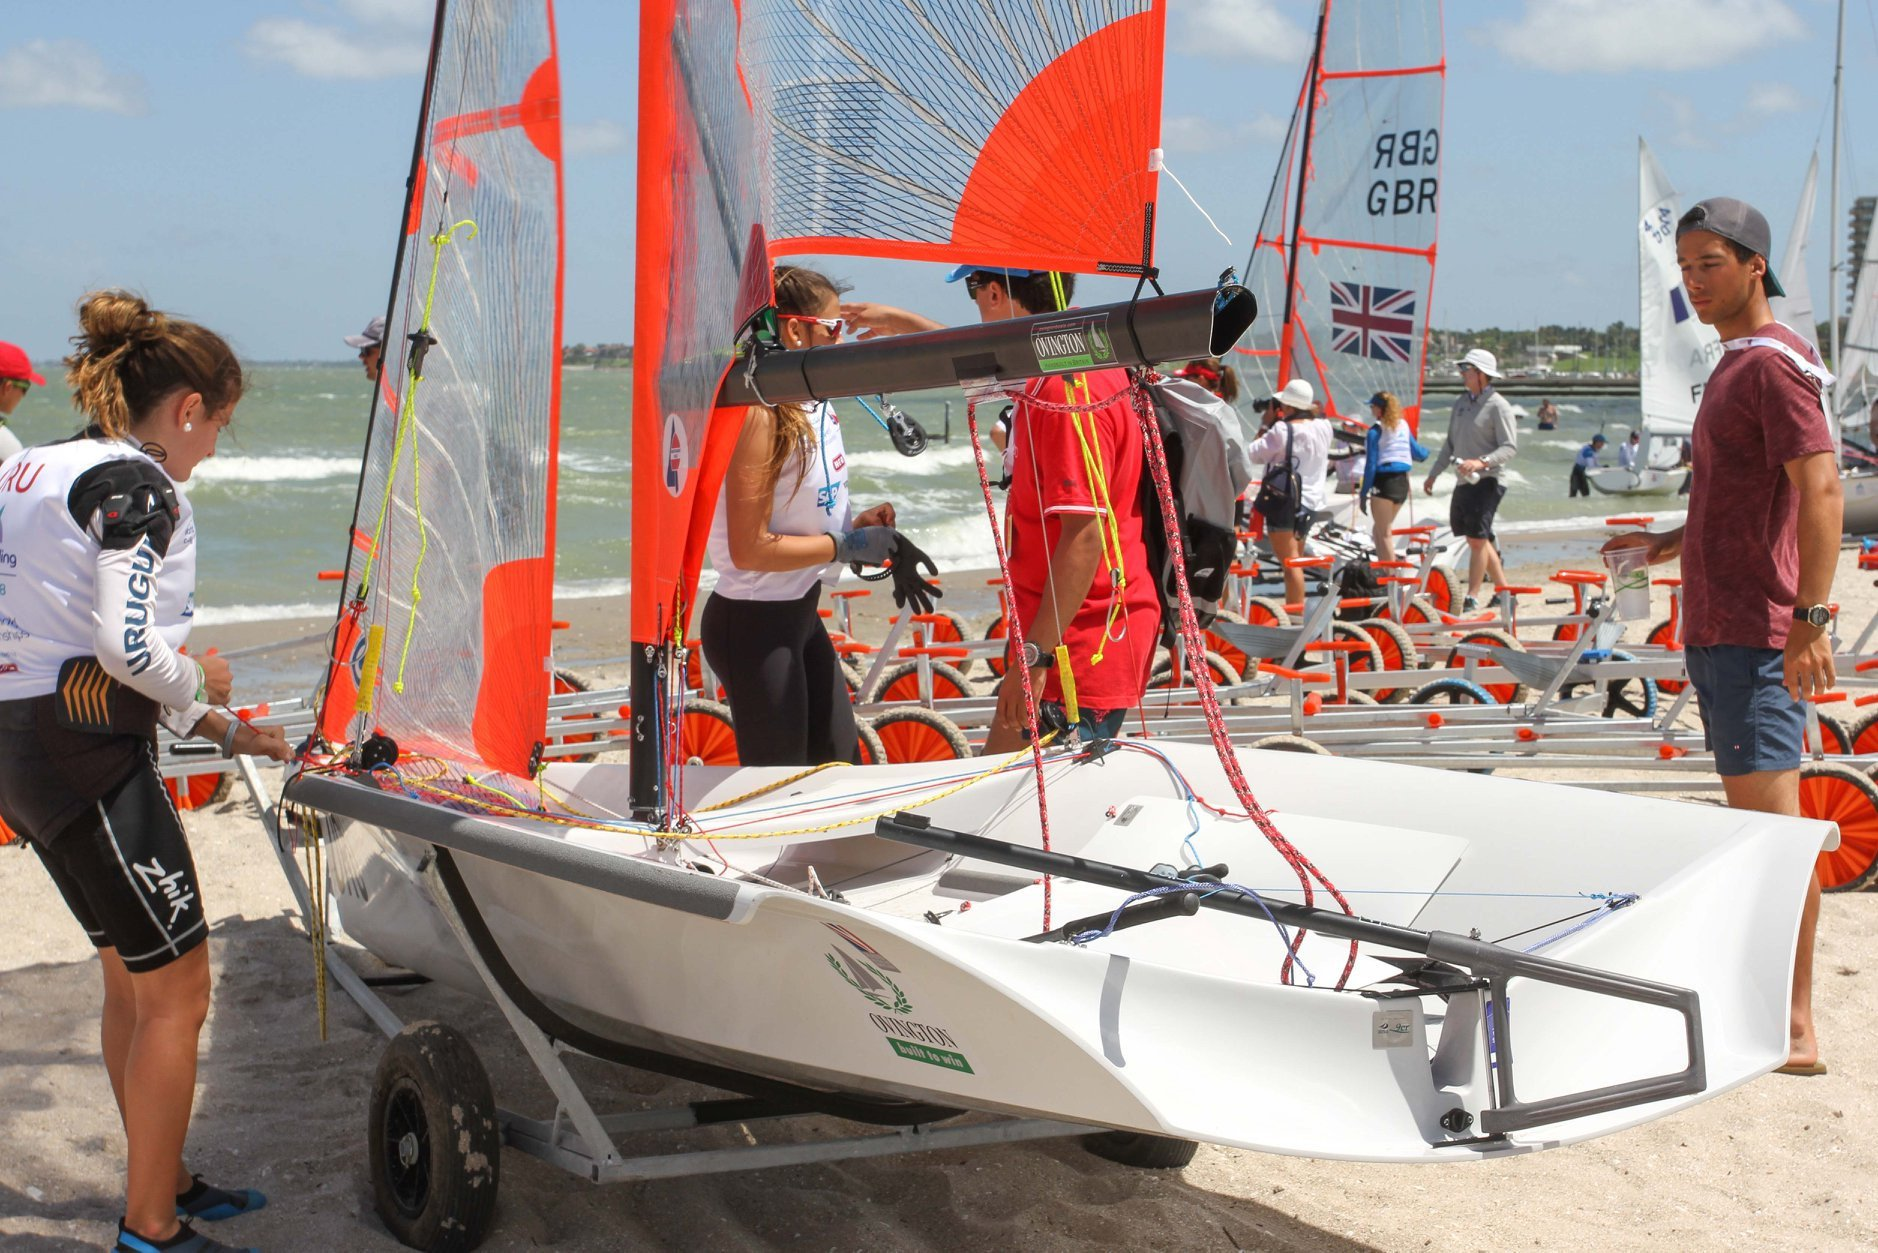 Youth Sailing World Championships to begin in Texas